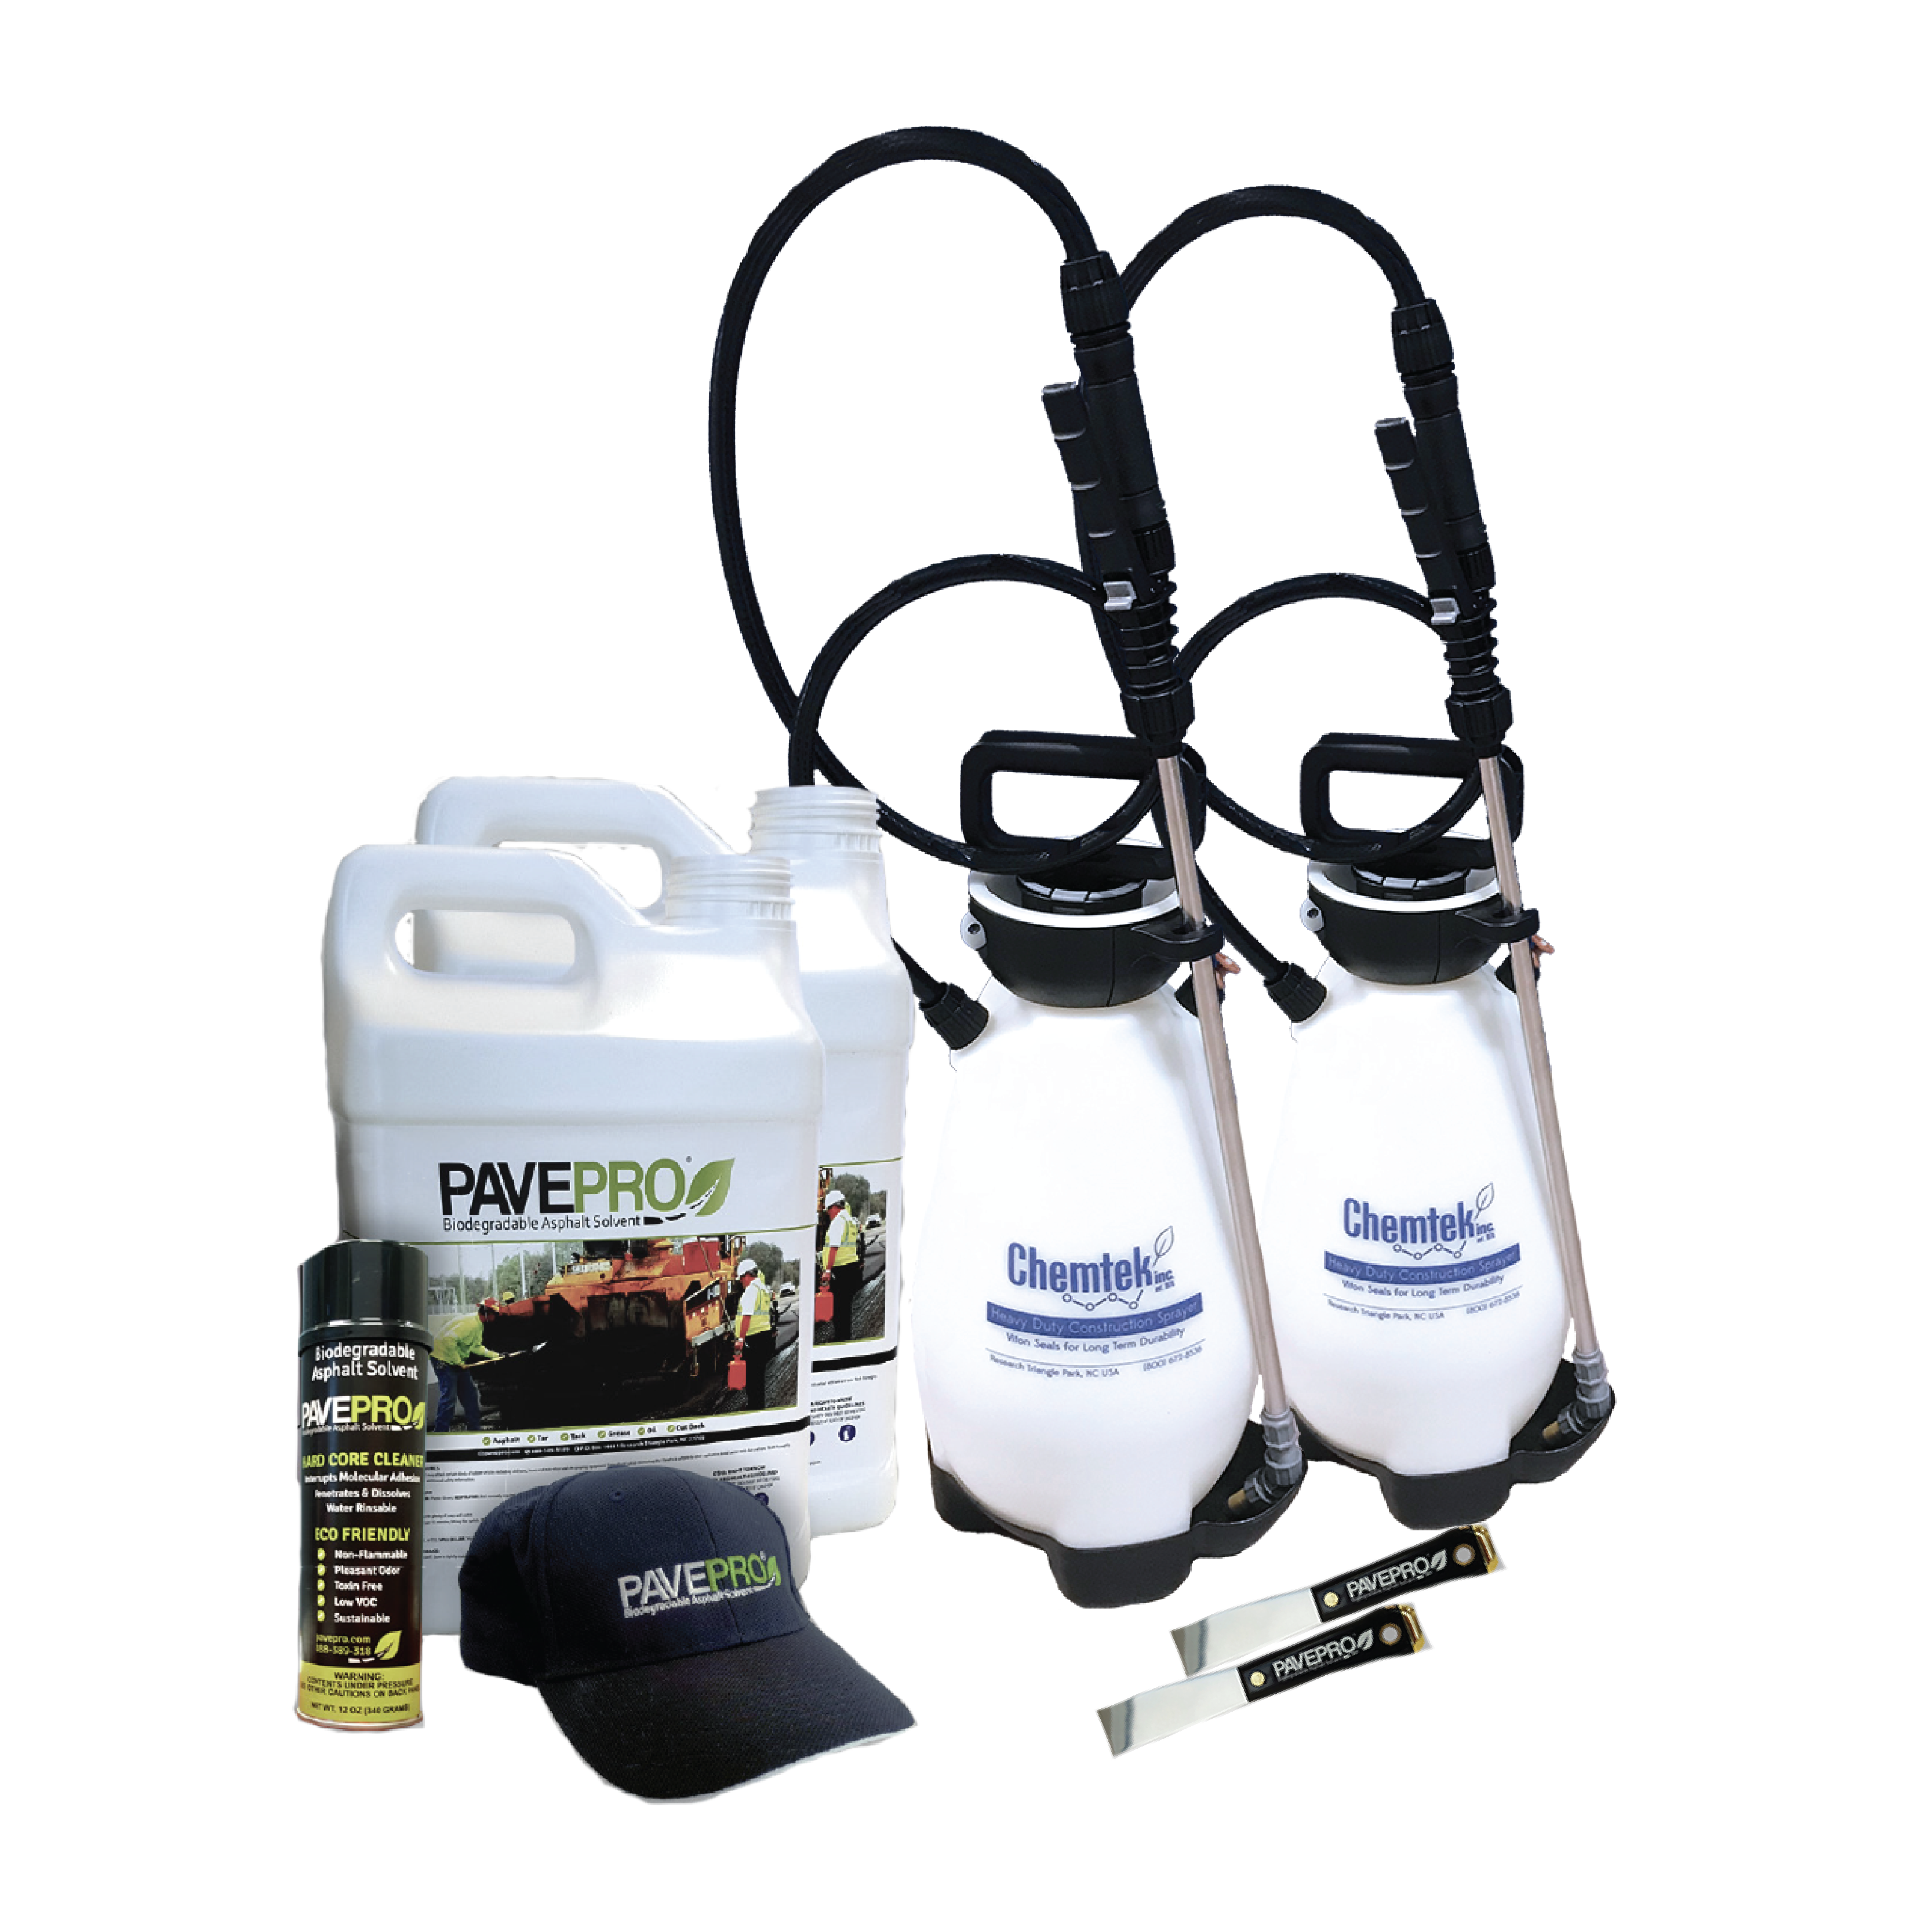 PavePro Crew Kit